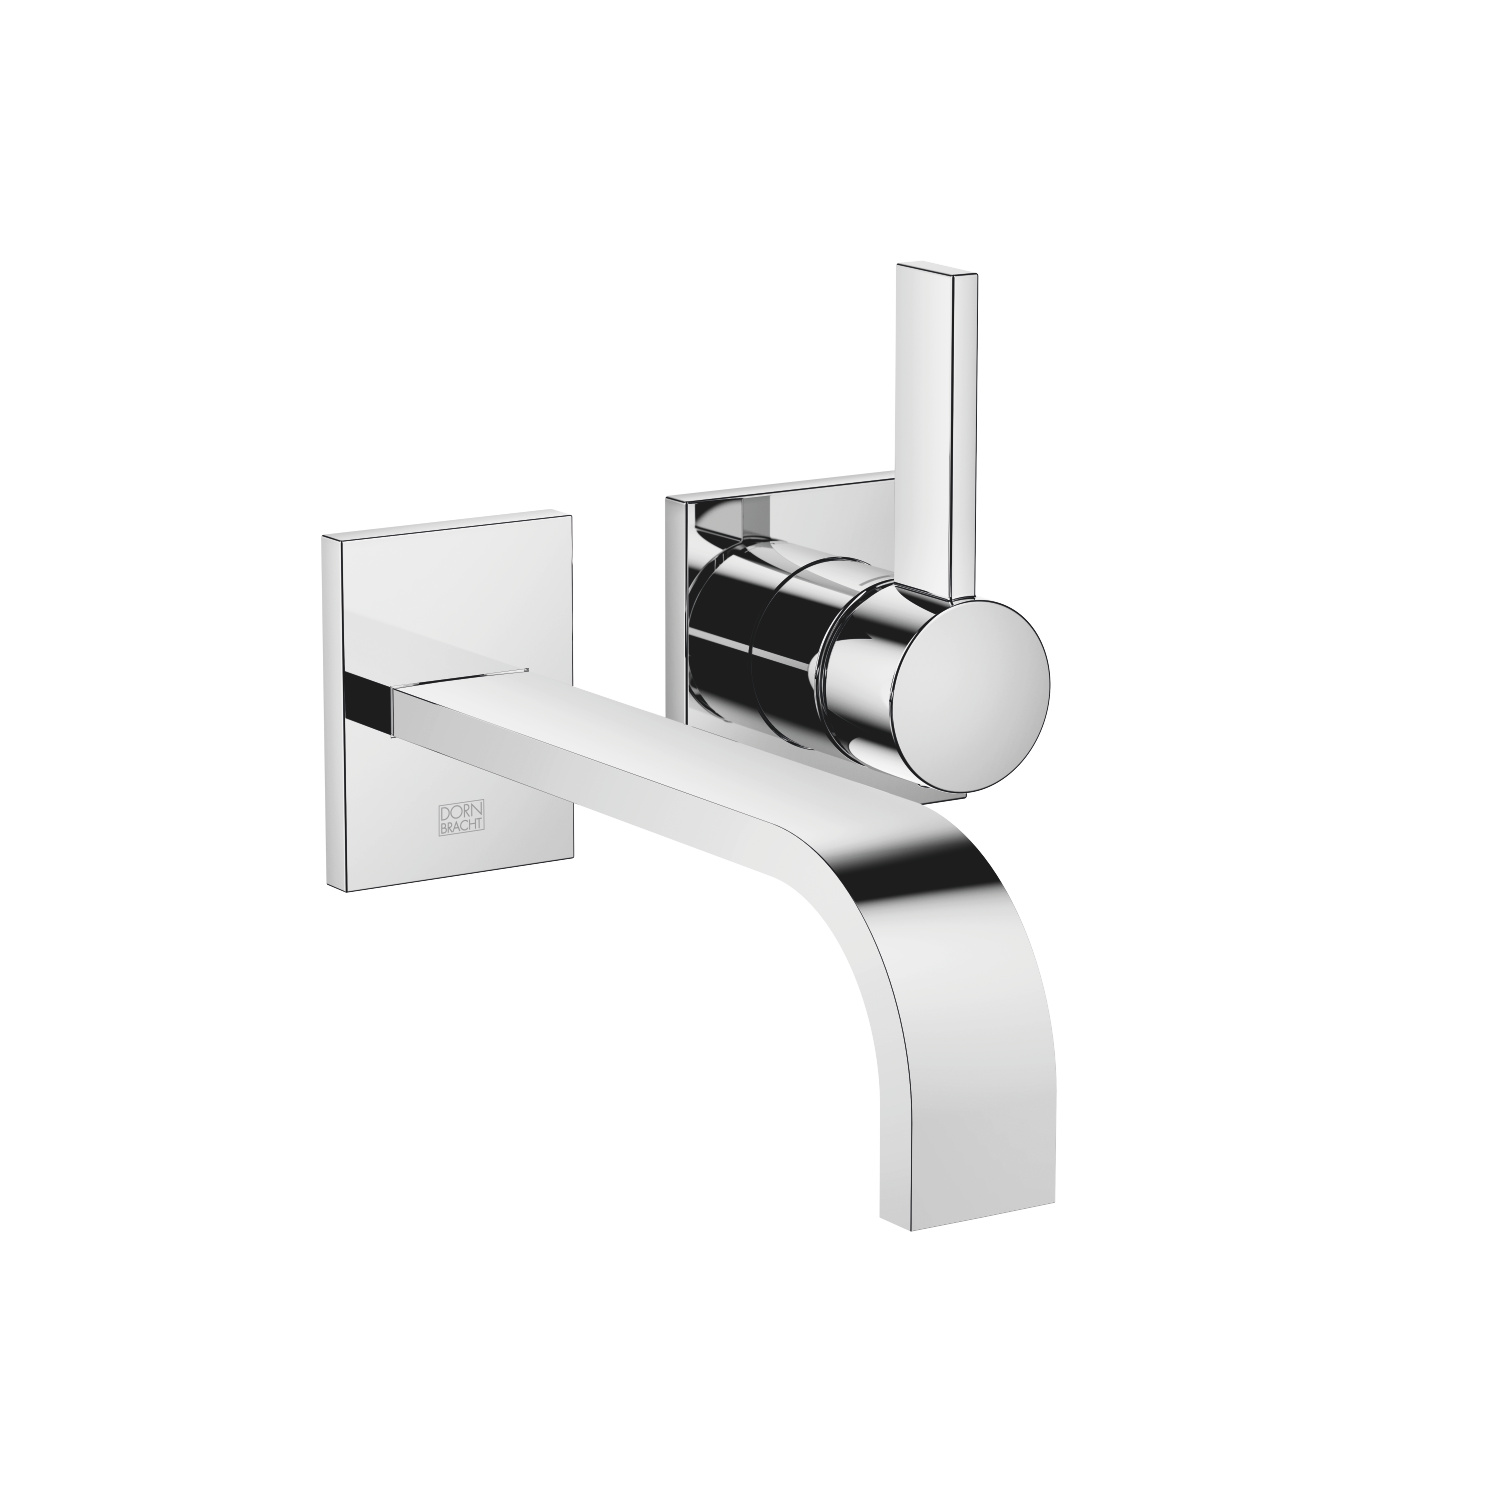 Wall-mounted single-lever mixer without drain - polished chrome - 36 861 782-00 0010